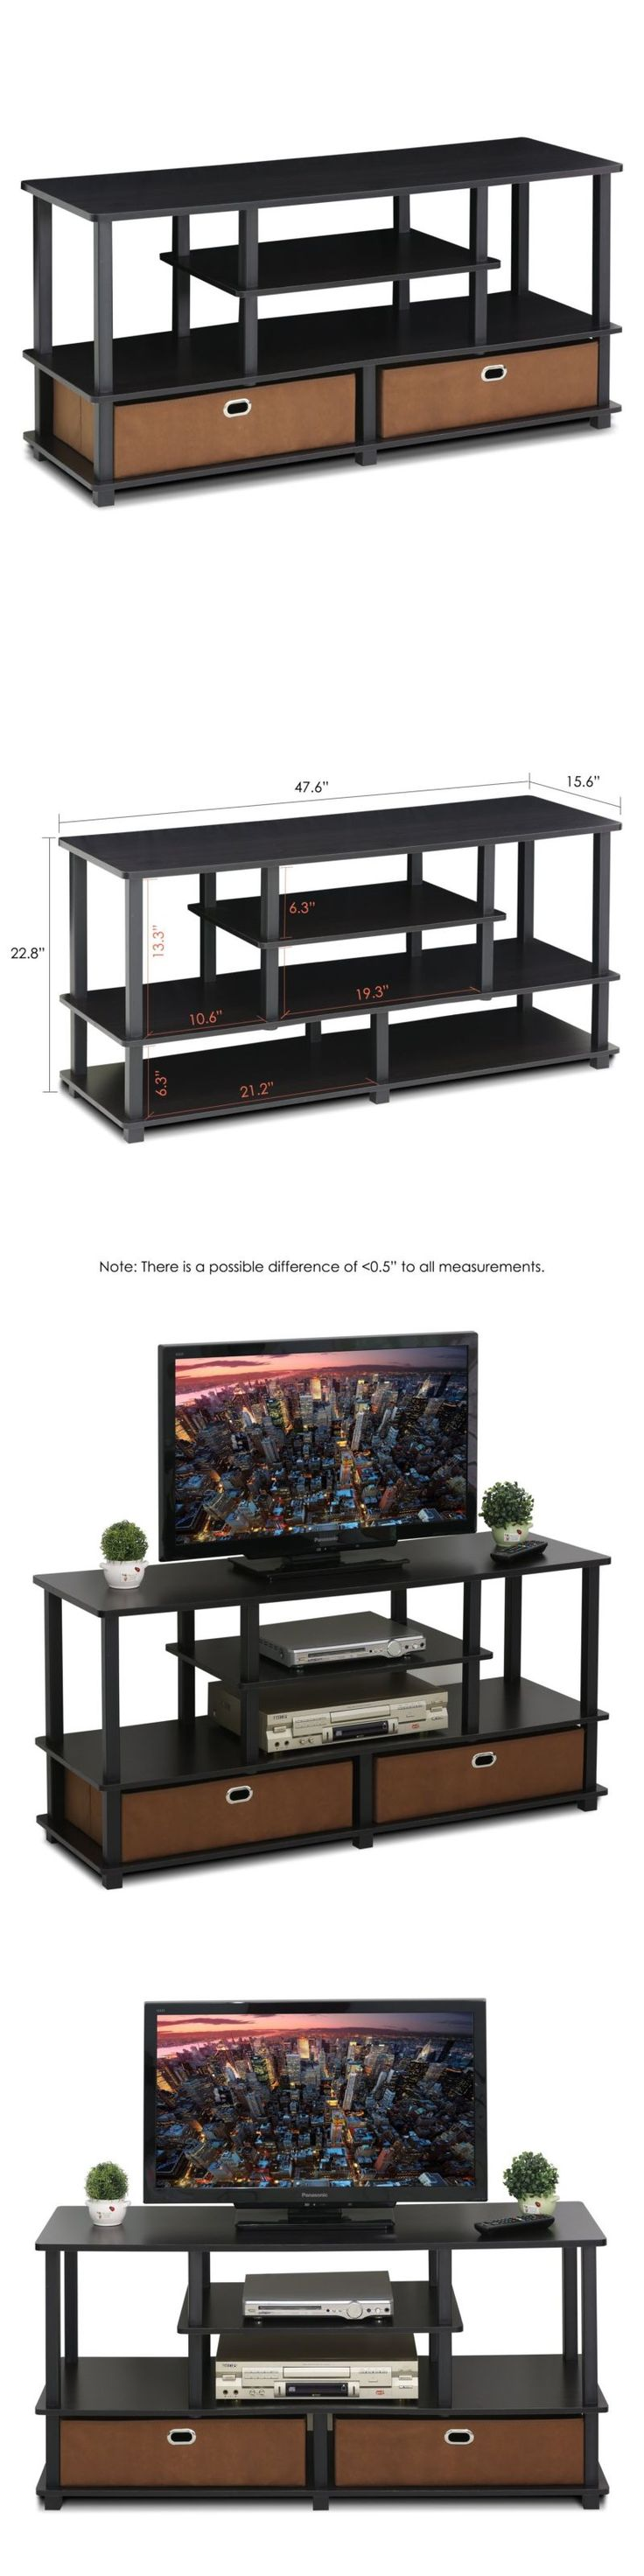 Entertainment Units TV Stands: Furinno Furinno Jaya Large Tv Stand For Up To 50-Inch Tv With Storage Bin, -> BUY IT NOW ONLY: $55.64 on eBay!